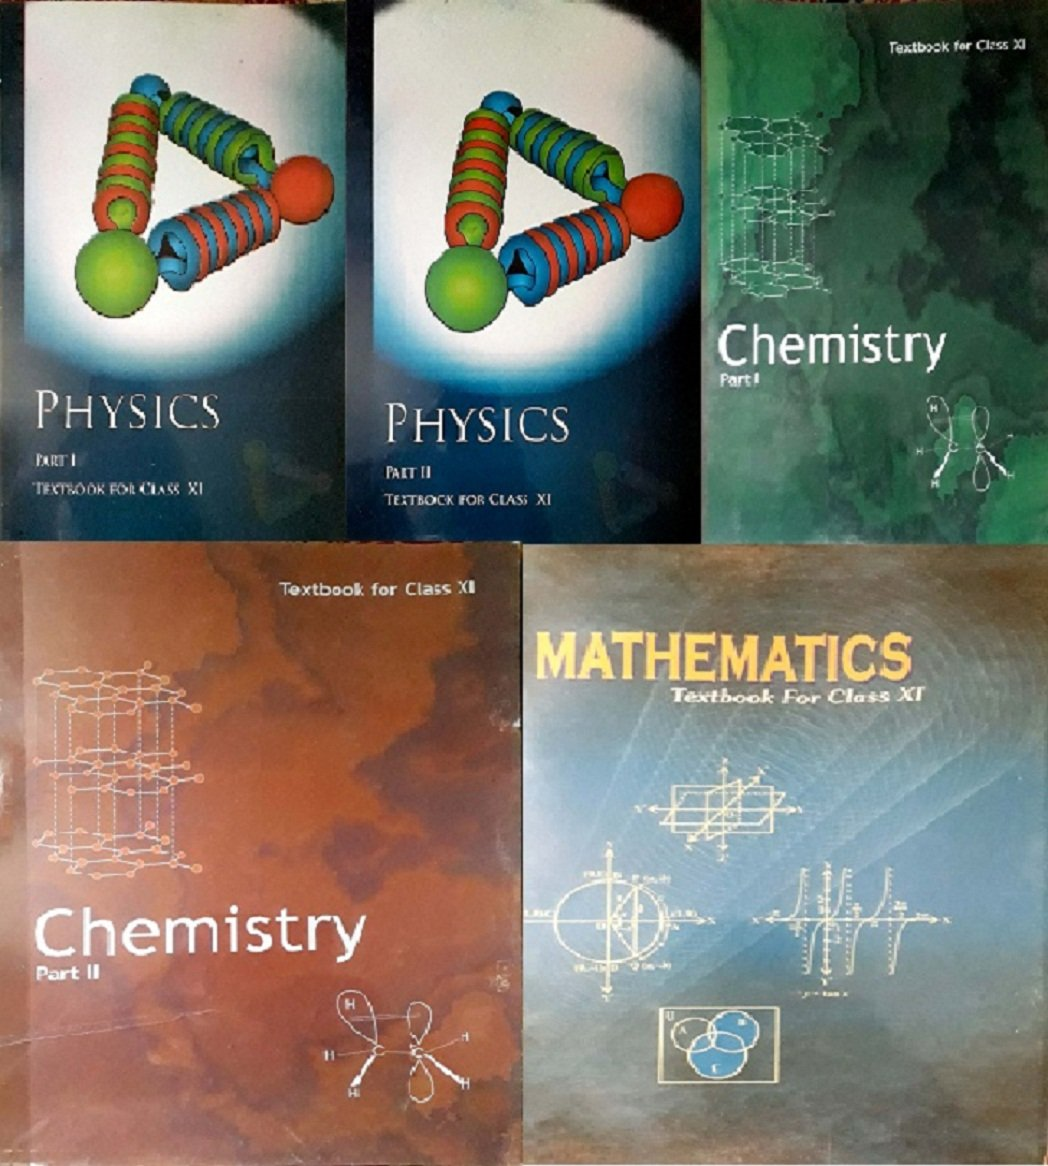 Physics Part 1 & 2, Chemistry Part -1 & 2 And Mathematics Textbook For Class - 11 ( Set Of 5 Books Ccombo ) Unknown Binding – 1 January 2018